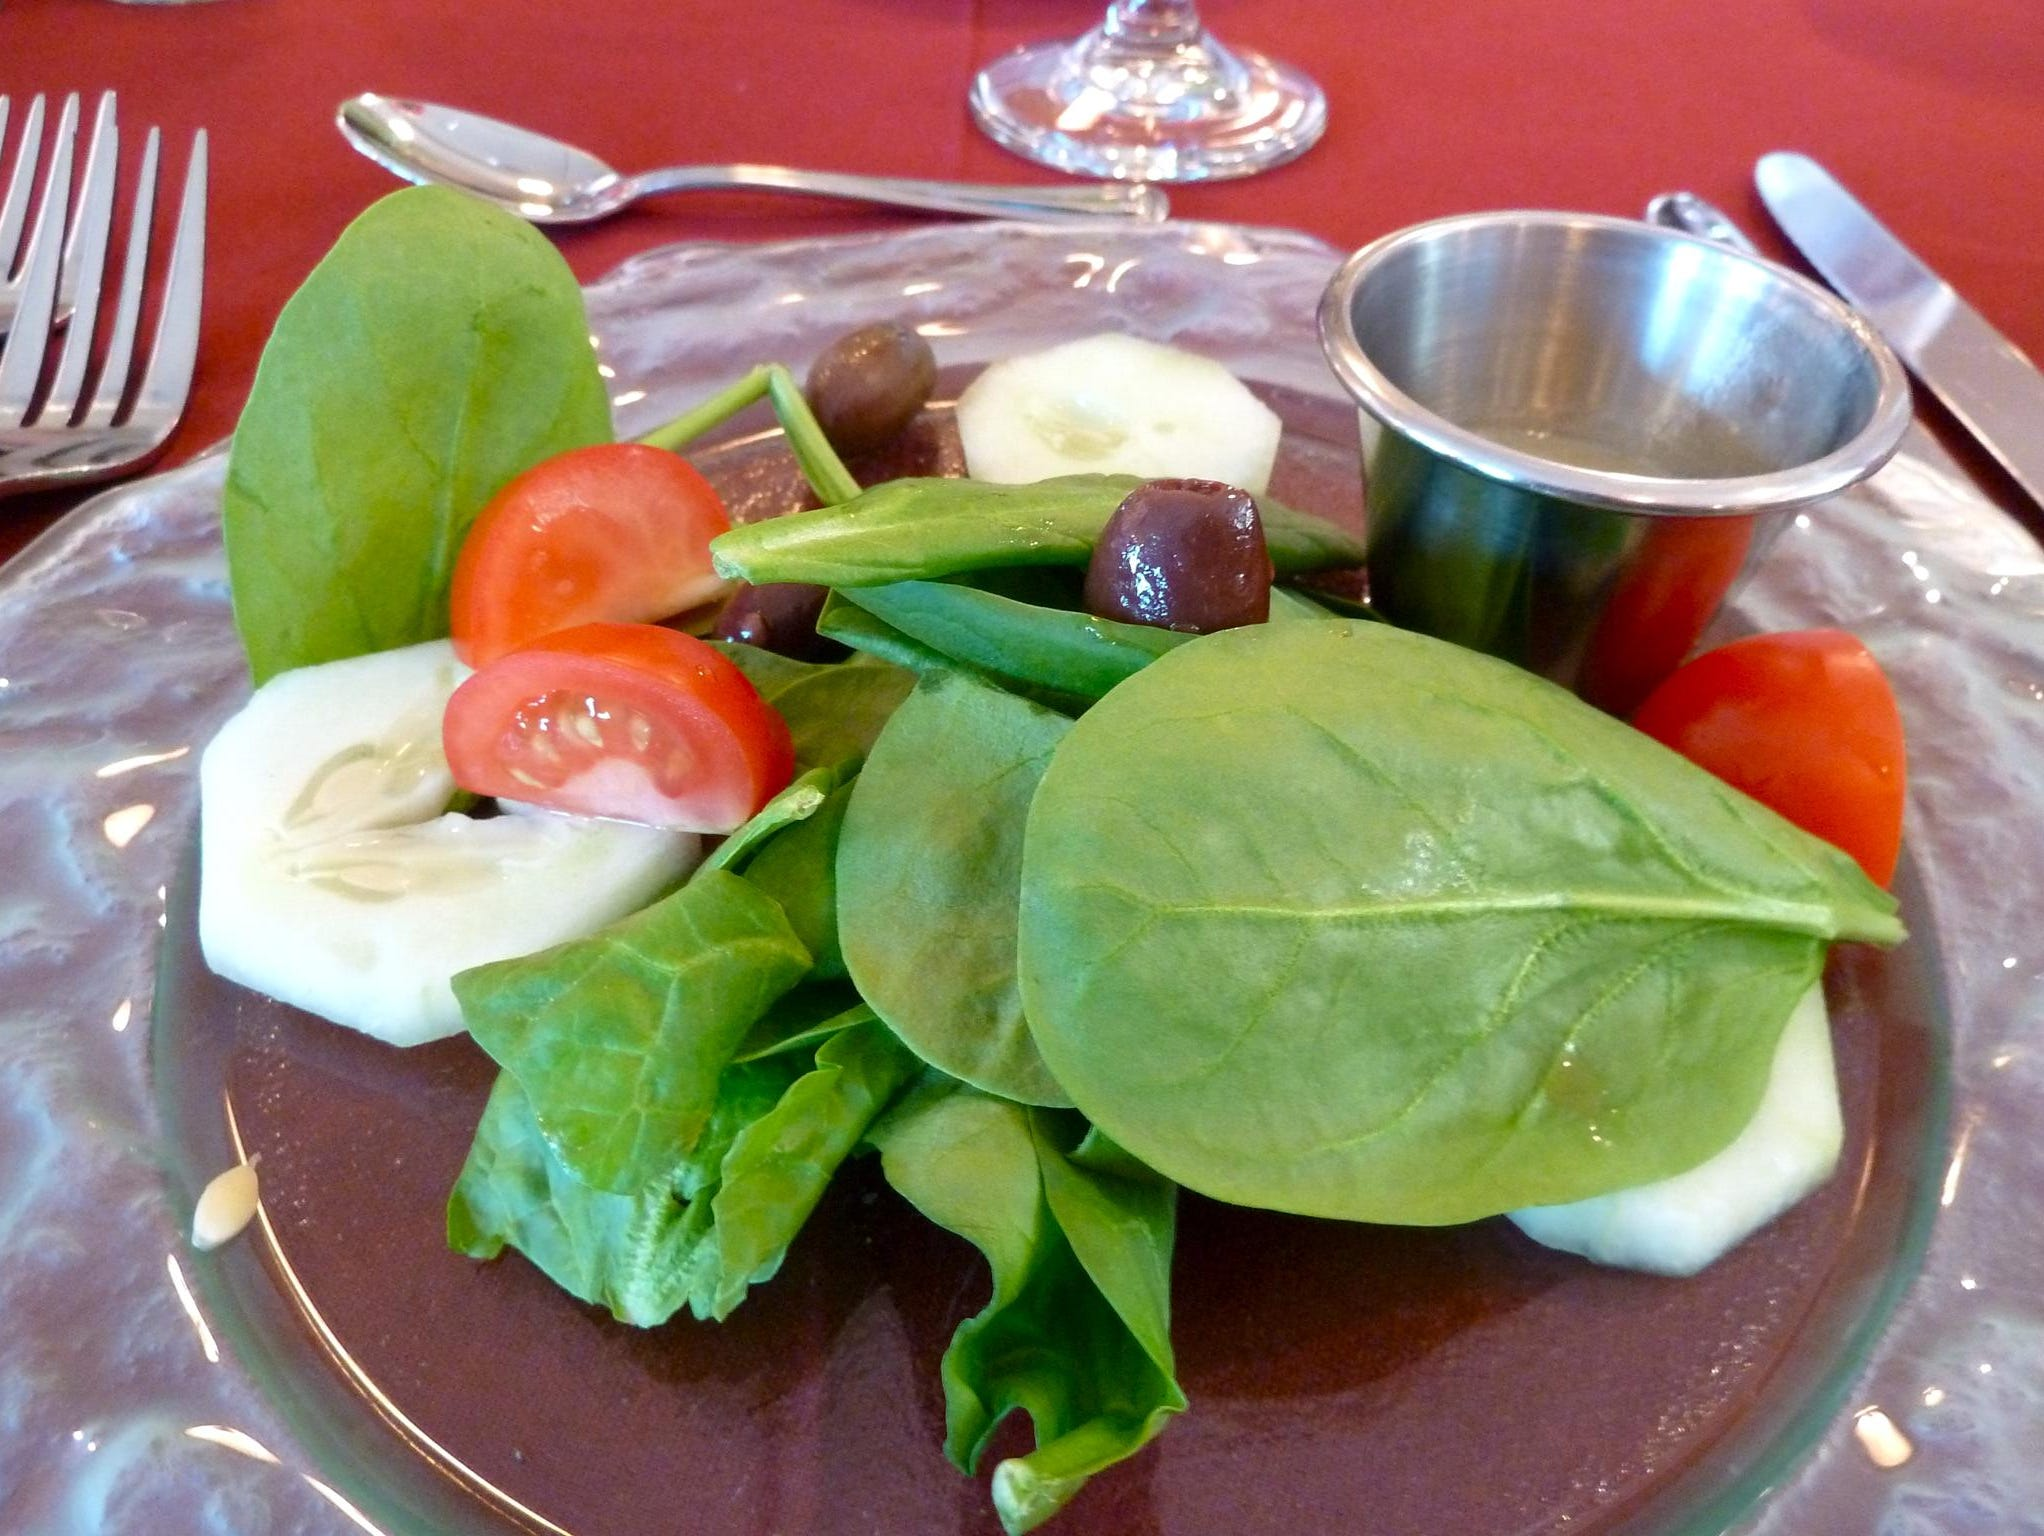 Dinners begin with freshly baked breads and a salad of the day, such as this spinach salad with kalamata olives dressed with balsamic vinegar and olive oil.